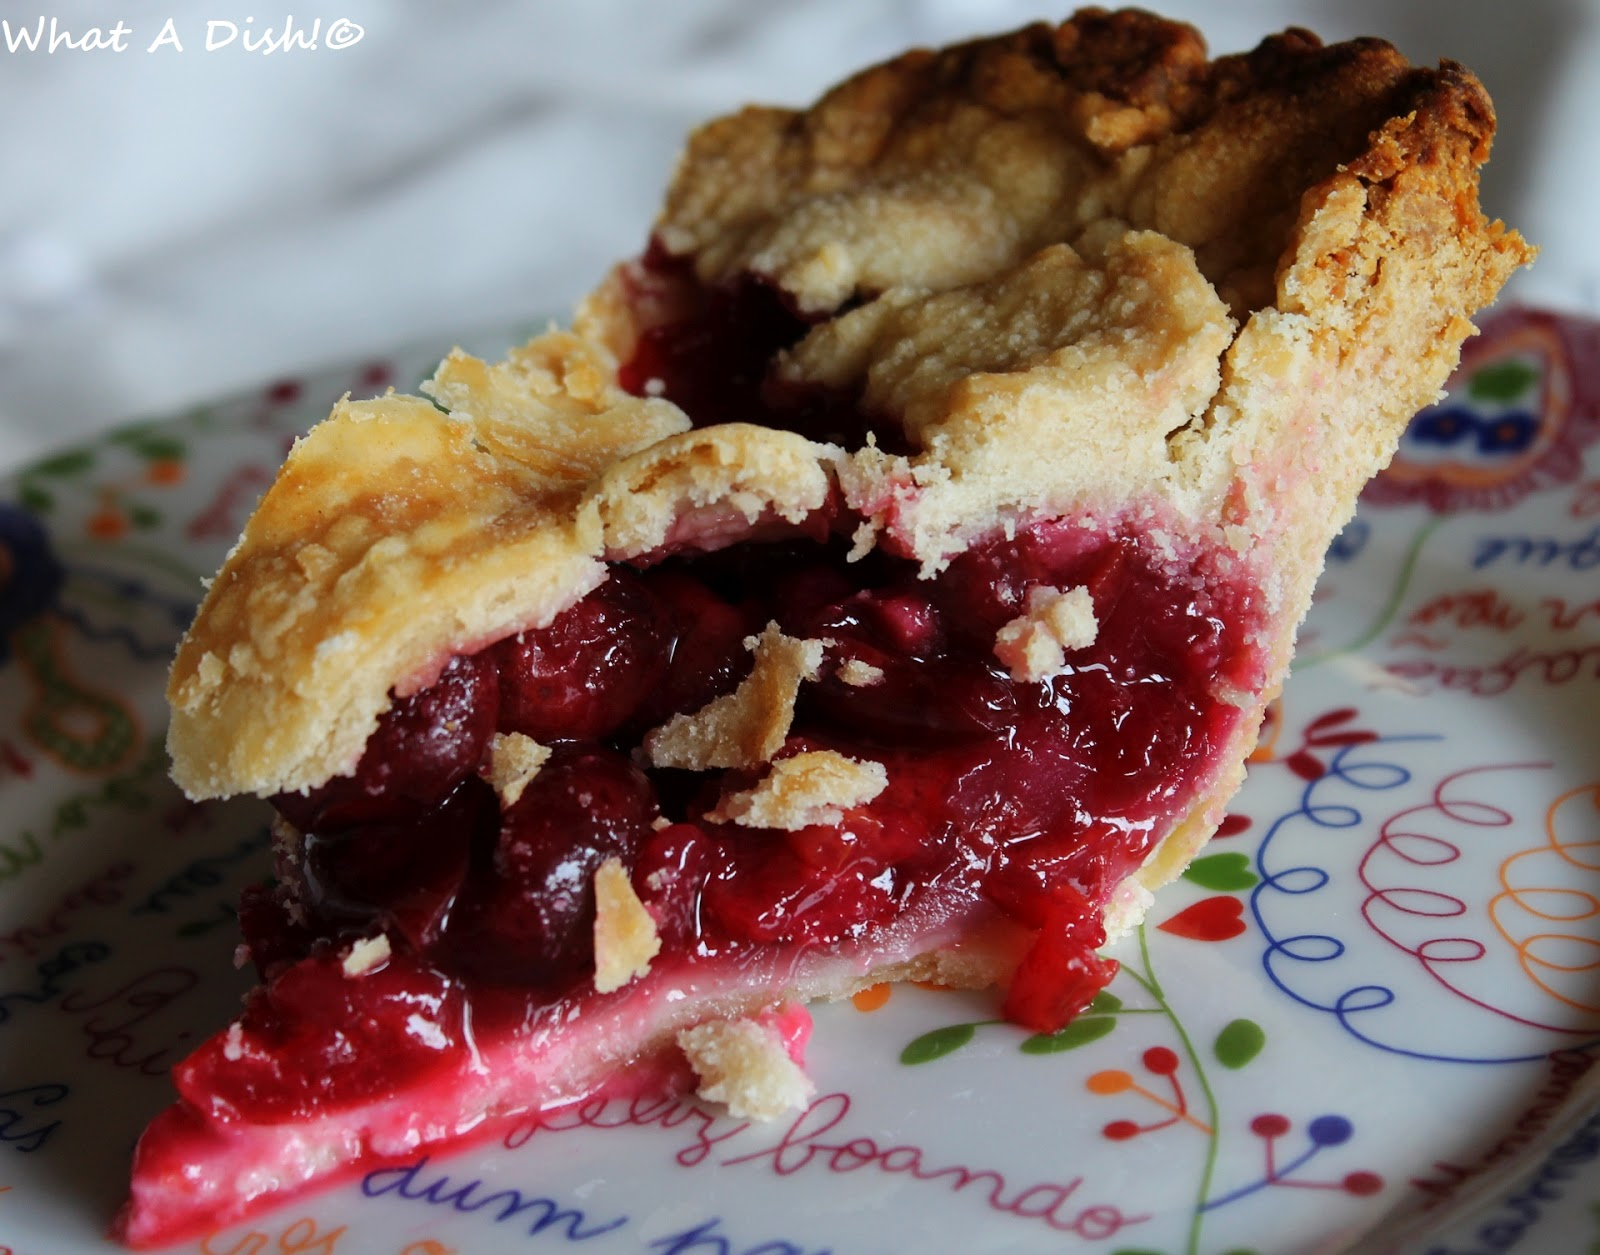 What A Dish!: Sweet Cherry Pie!